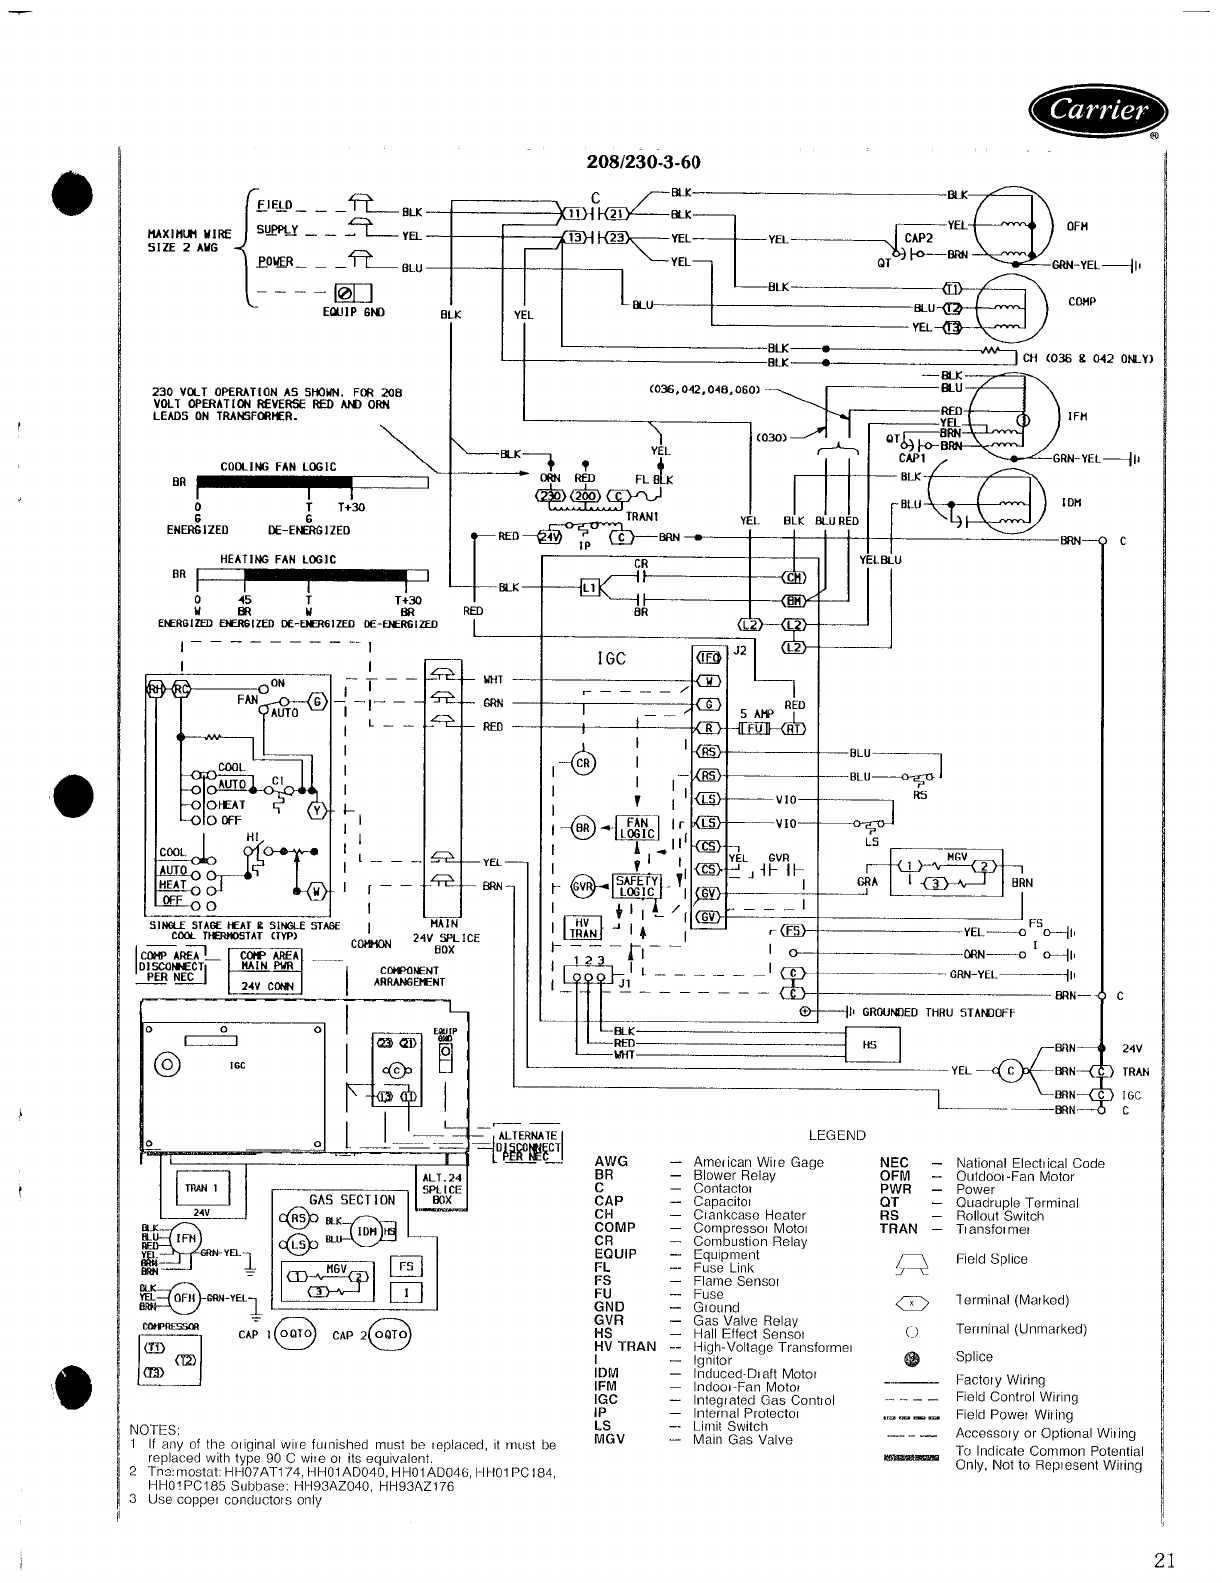 page 21 of carrier gas heater 48ss user guide manualsonline comGast 86r Compressor Wiring Diagram #14